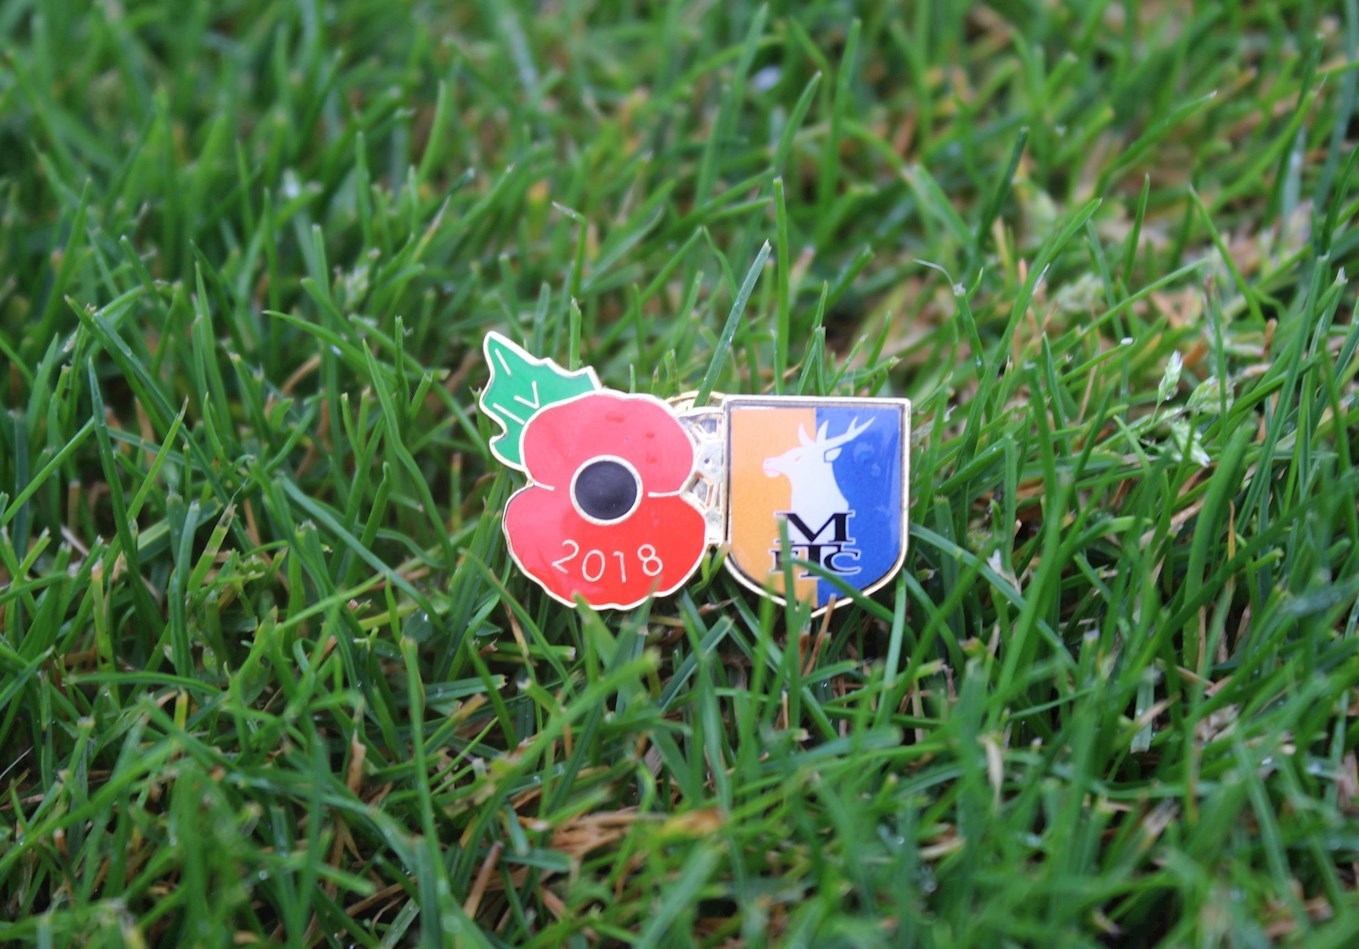 Stags poppy pin badges now available - News - Mansfield Town